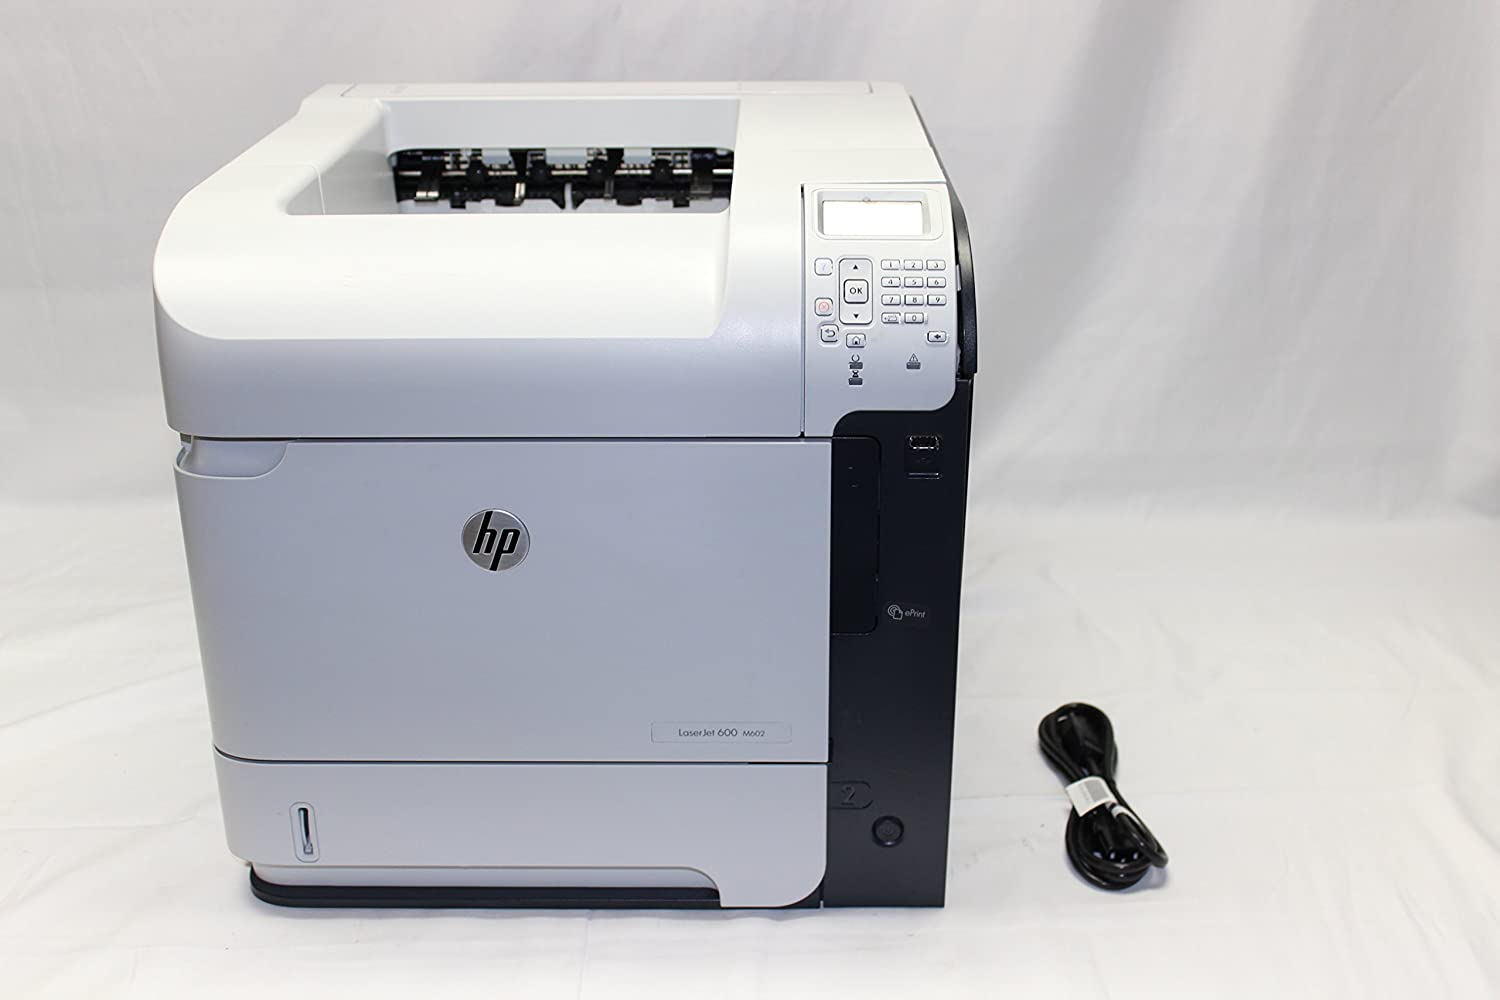 Amazon.com: HEWLETT PACKARD HP Laserjet 600 M602X ...